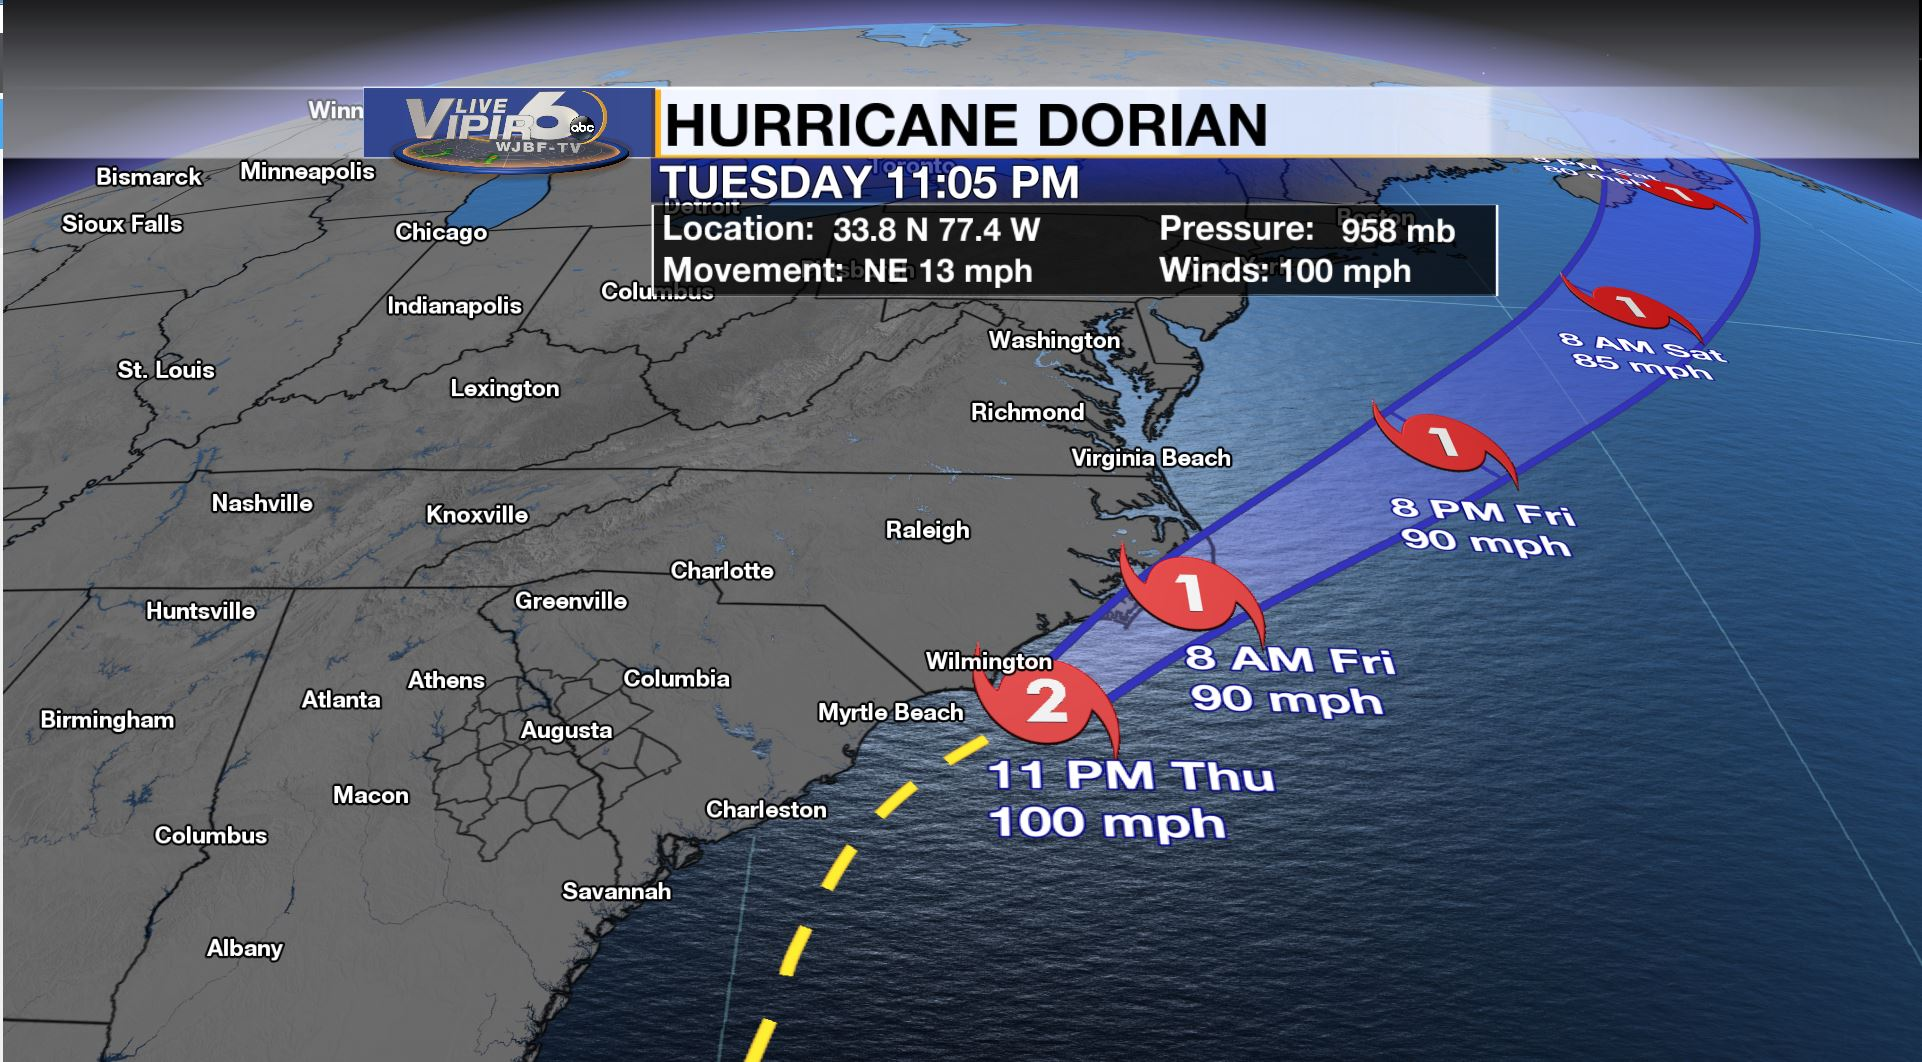 Hurricane Dorian's winds hold at 105mph | WJBF